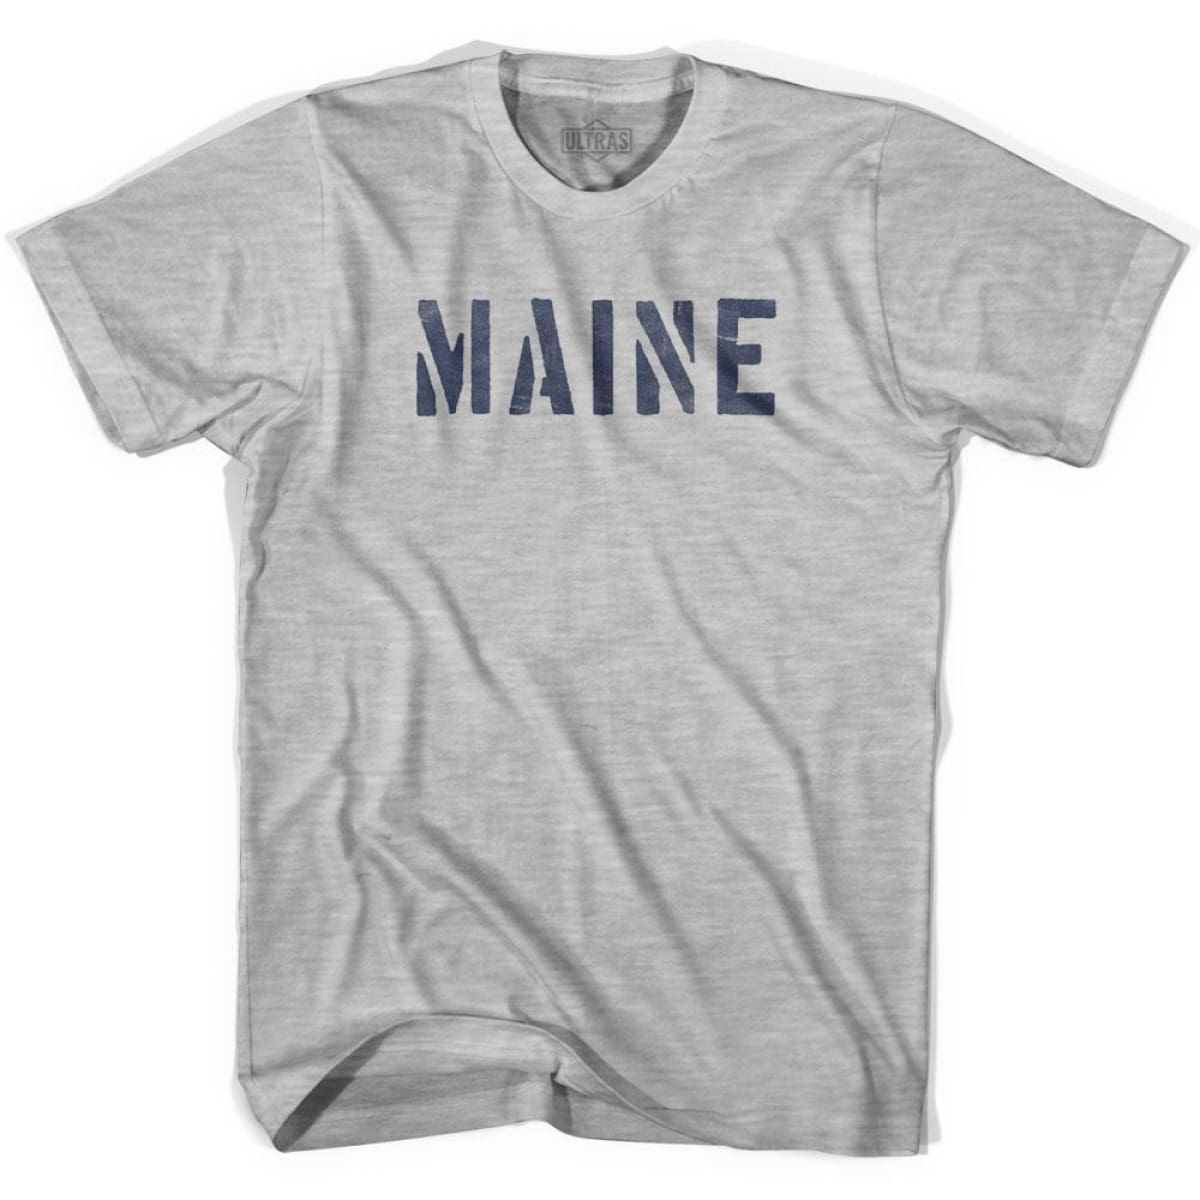 Maine State Stencil Adult Cotton T-shirt - Grey Heather / Adult Small - Stencil State